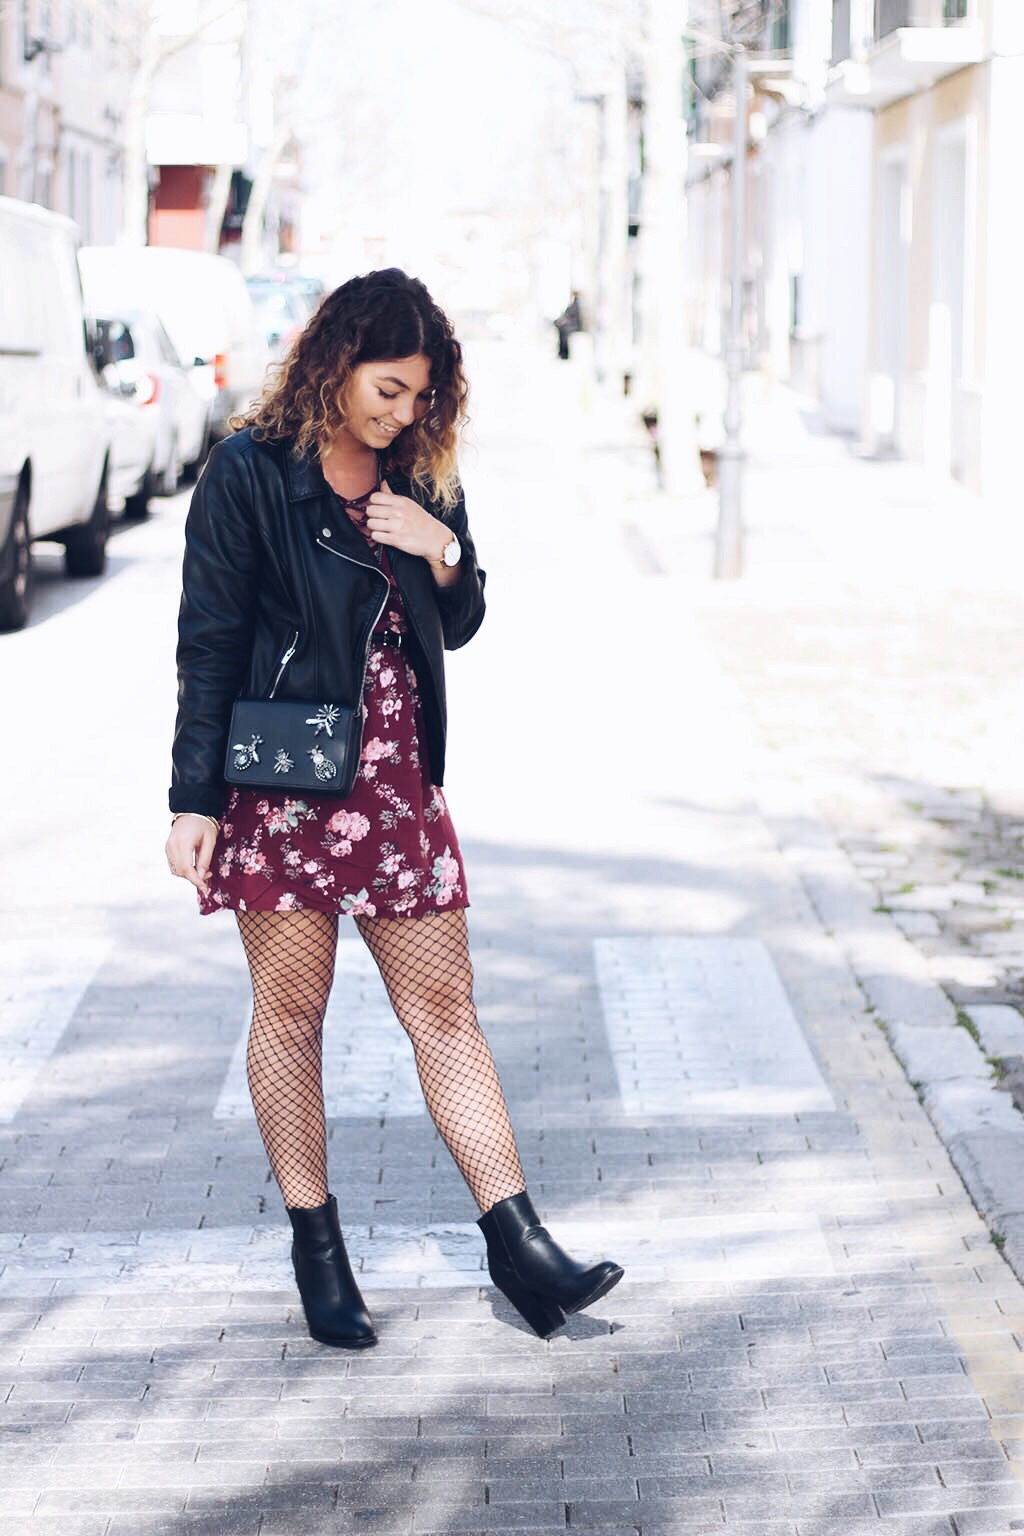 blog-mode-fashion-style-ootd-outfit-look-inspiration-avis-conseil-french-influencer